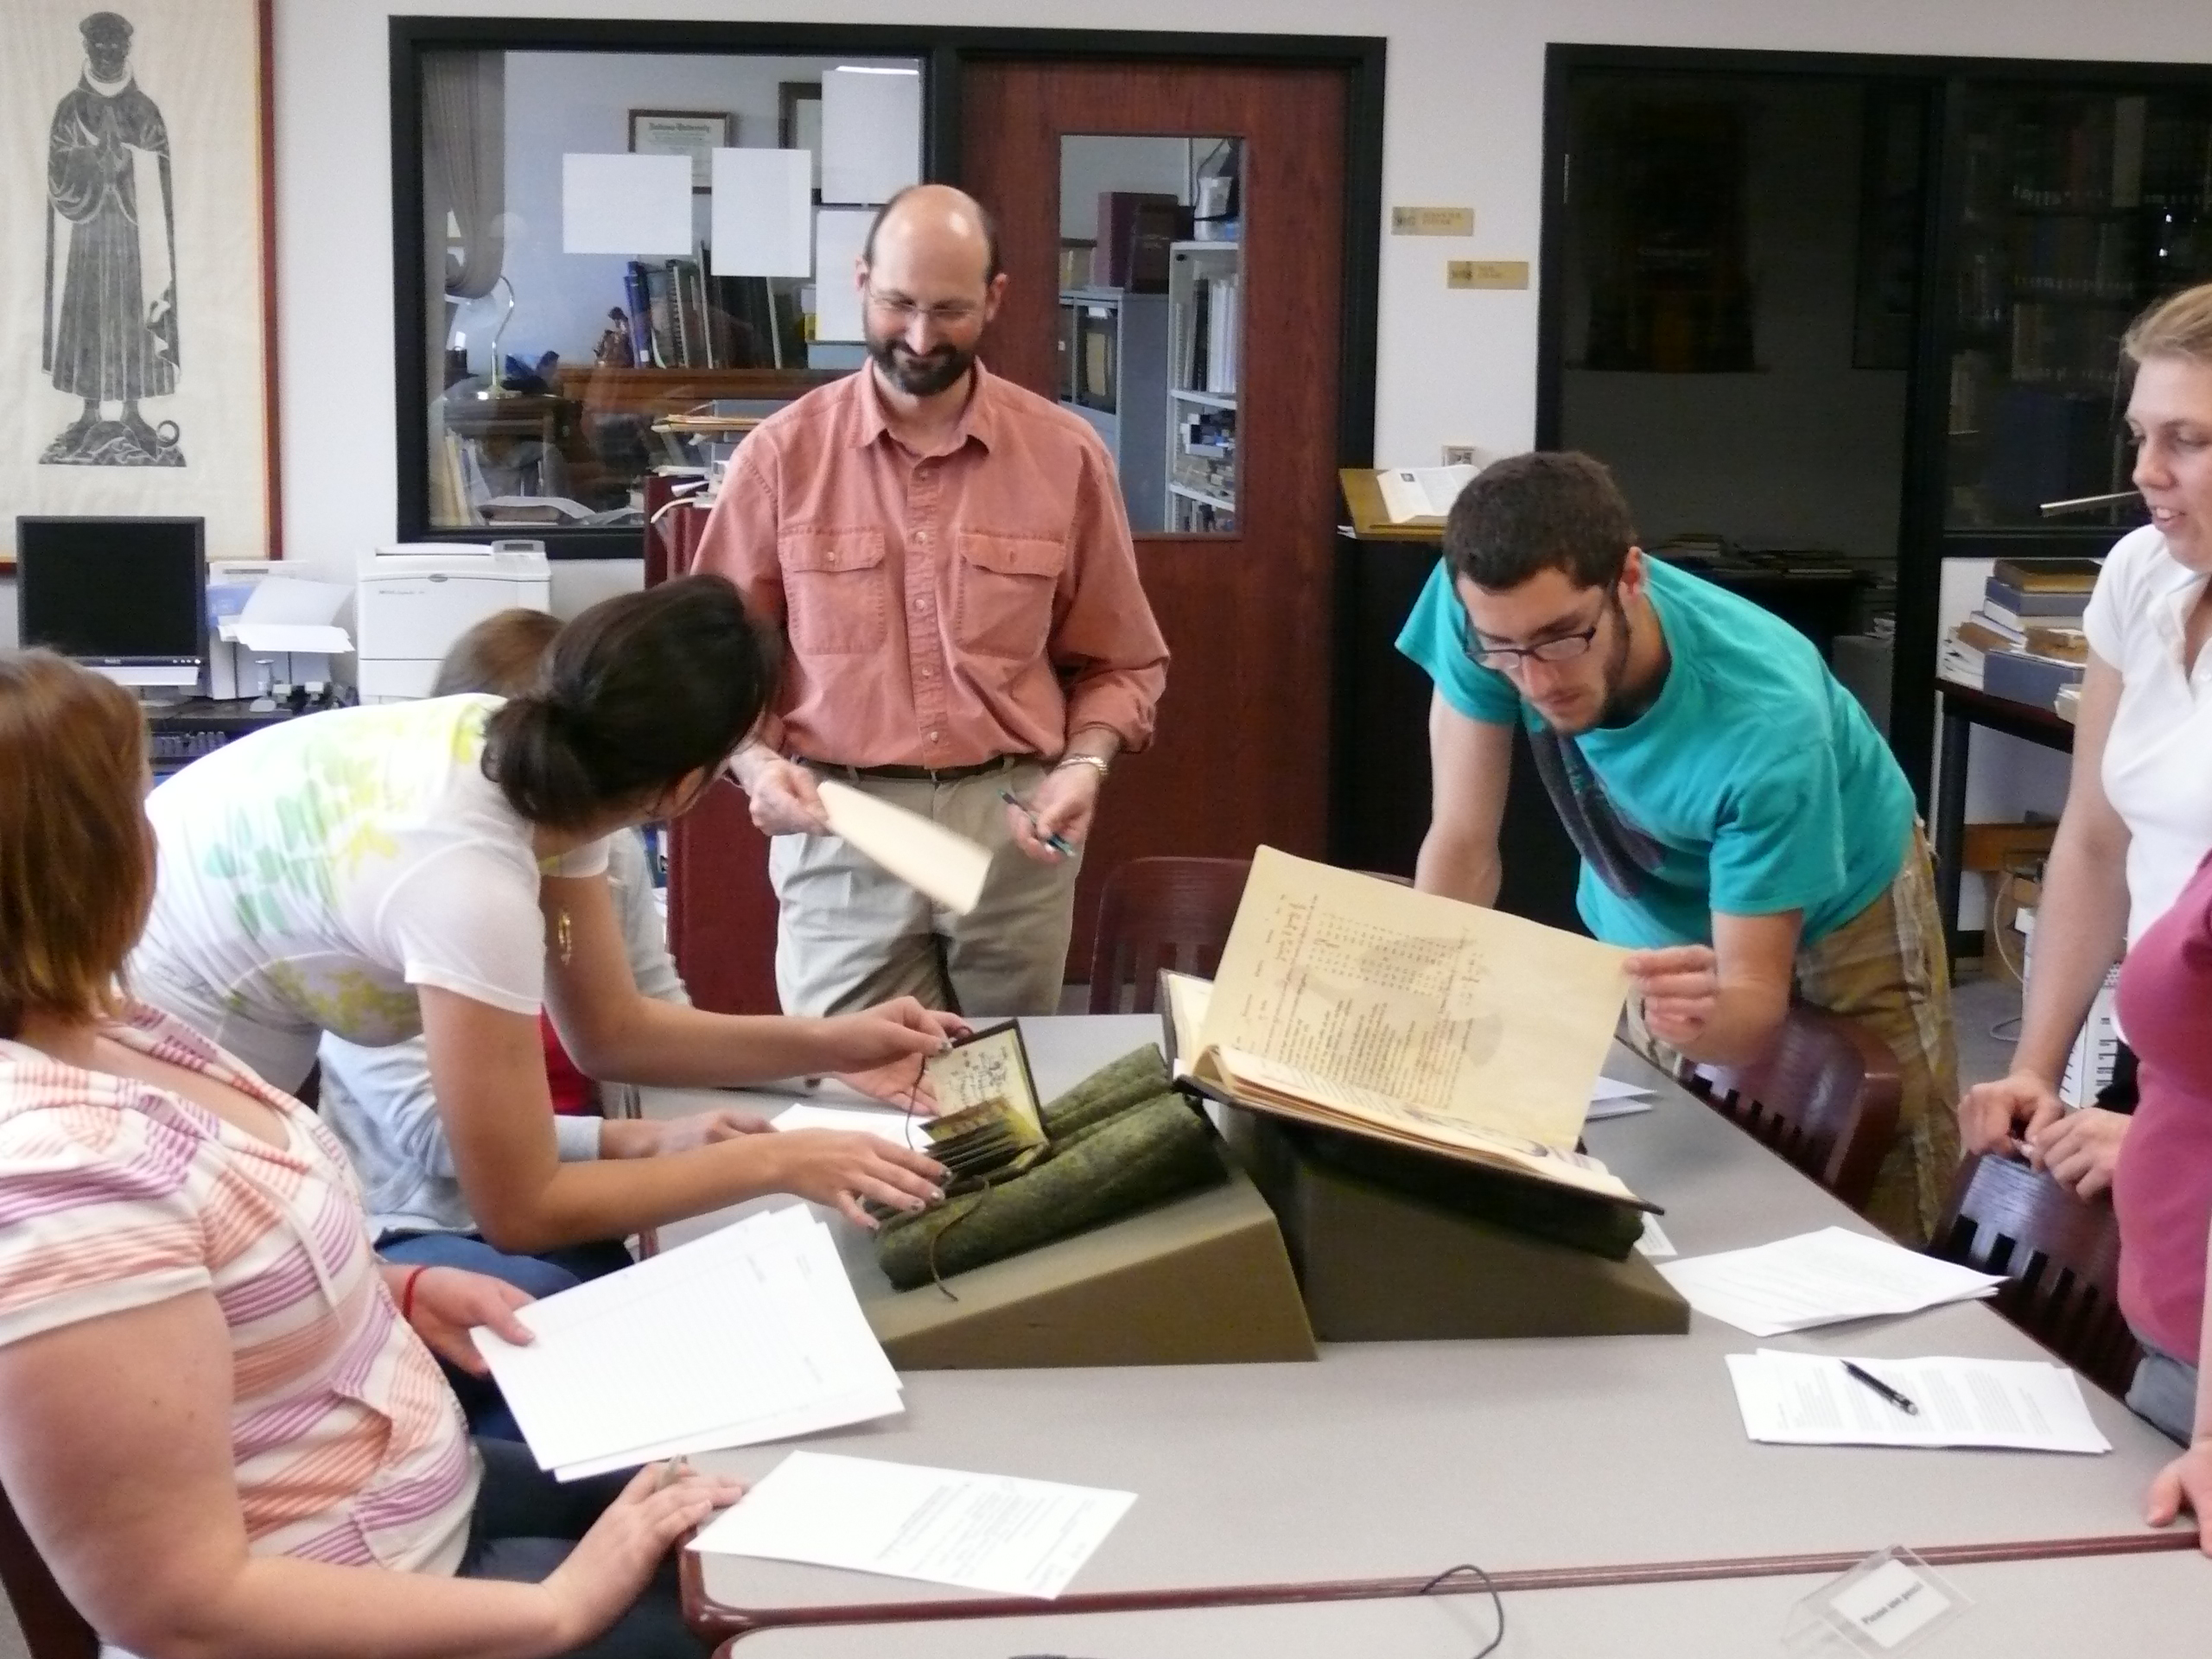 Instructor answering questions of students consulting rare books